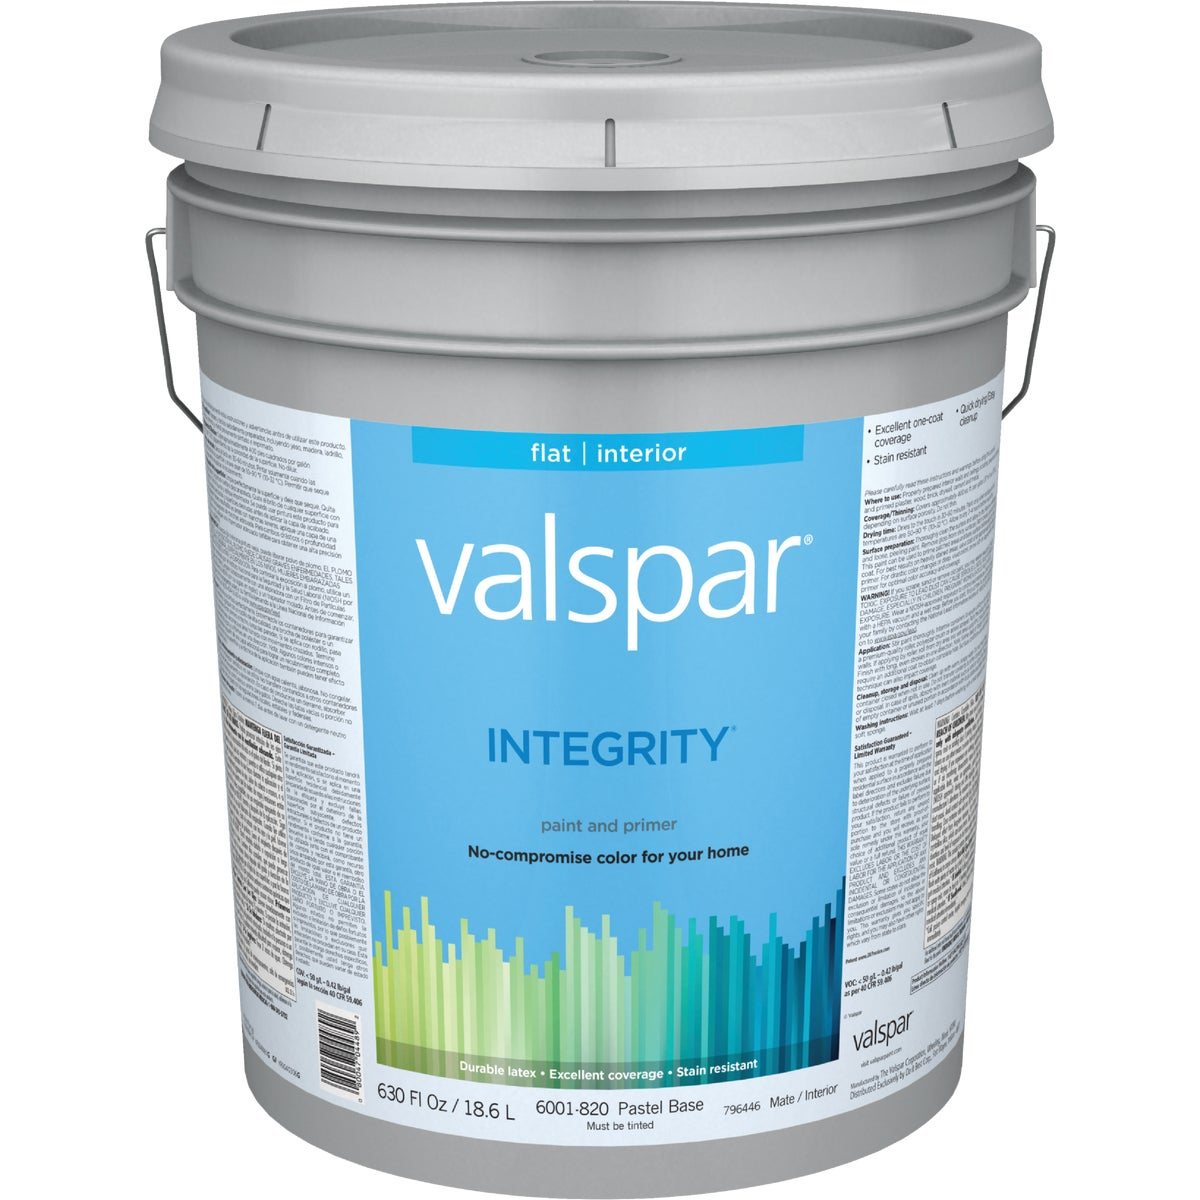 INT FLAT PASTEL BS PAINT - 004.6001820.008 by Valspar Corp